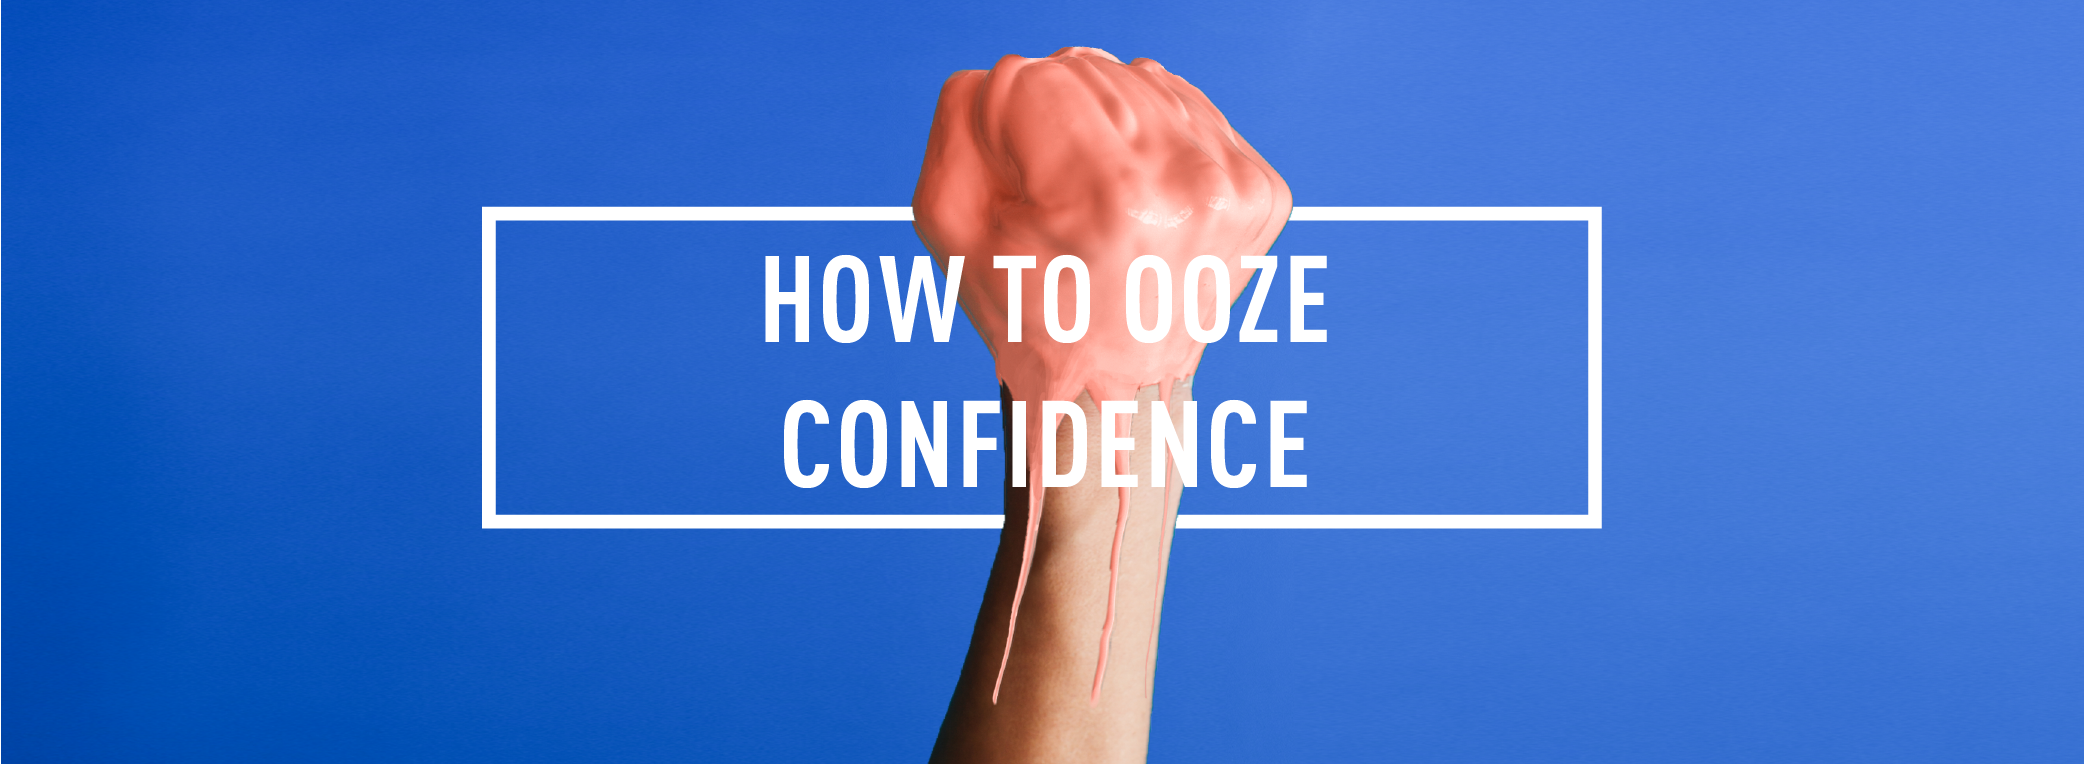 How to ooze confidence_Webpage Header